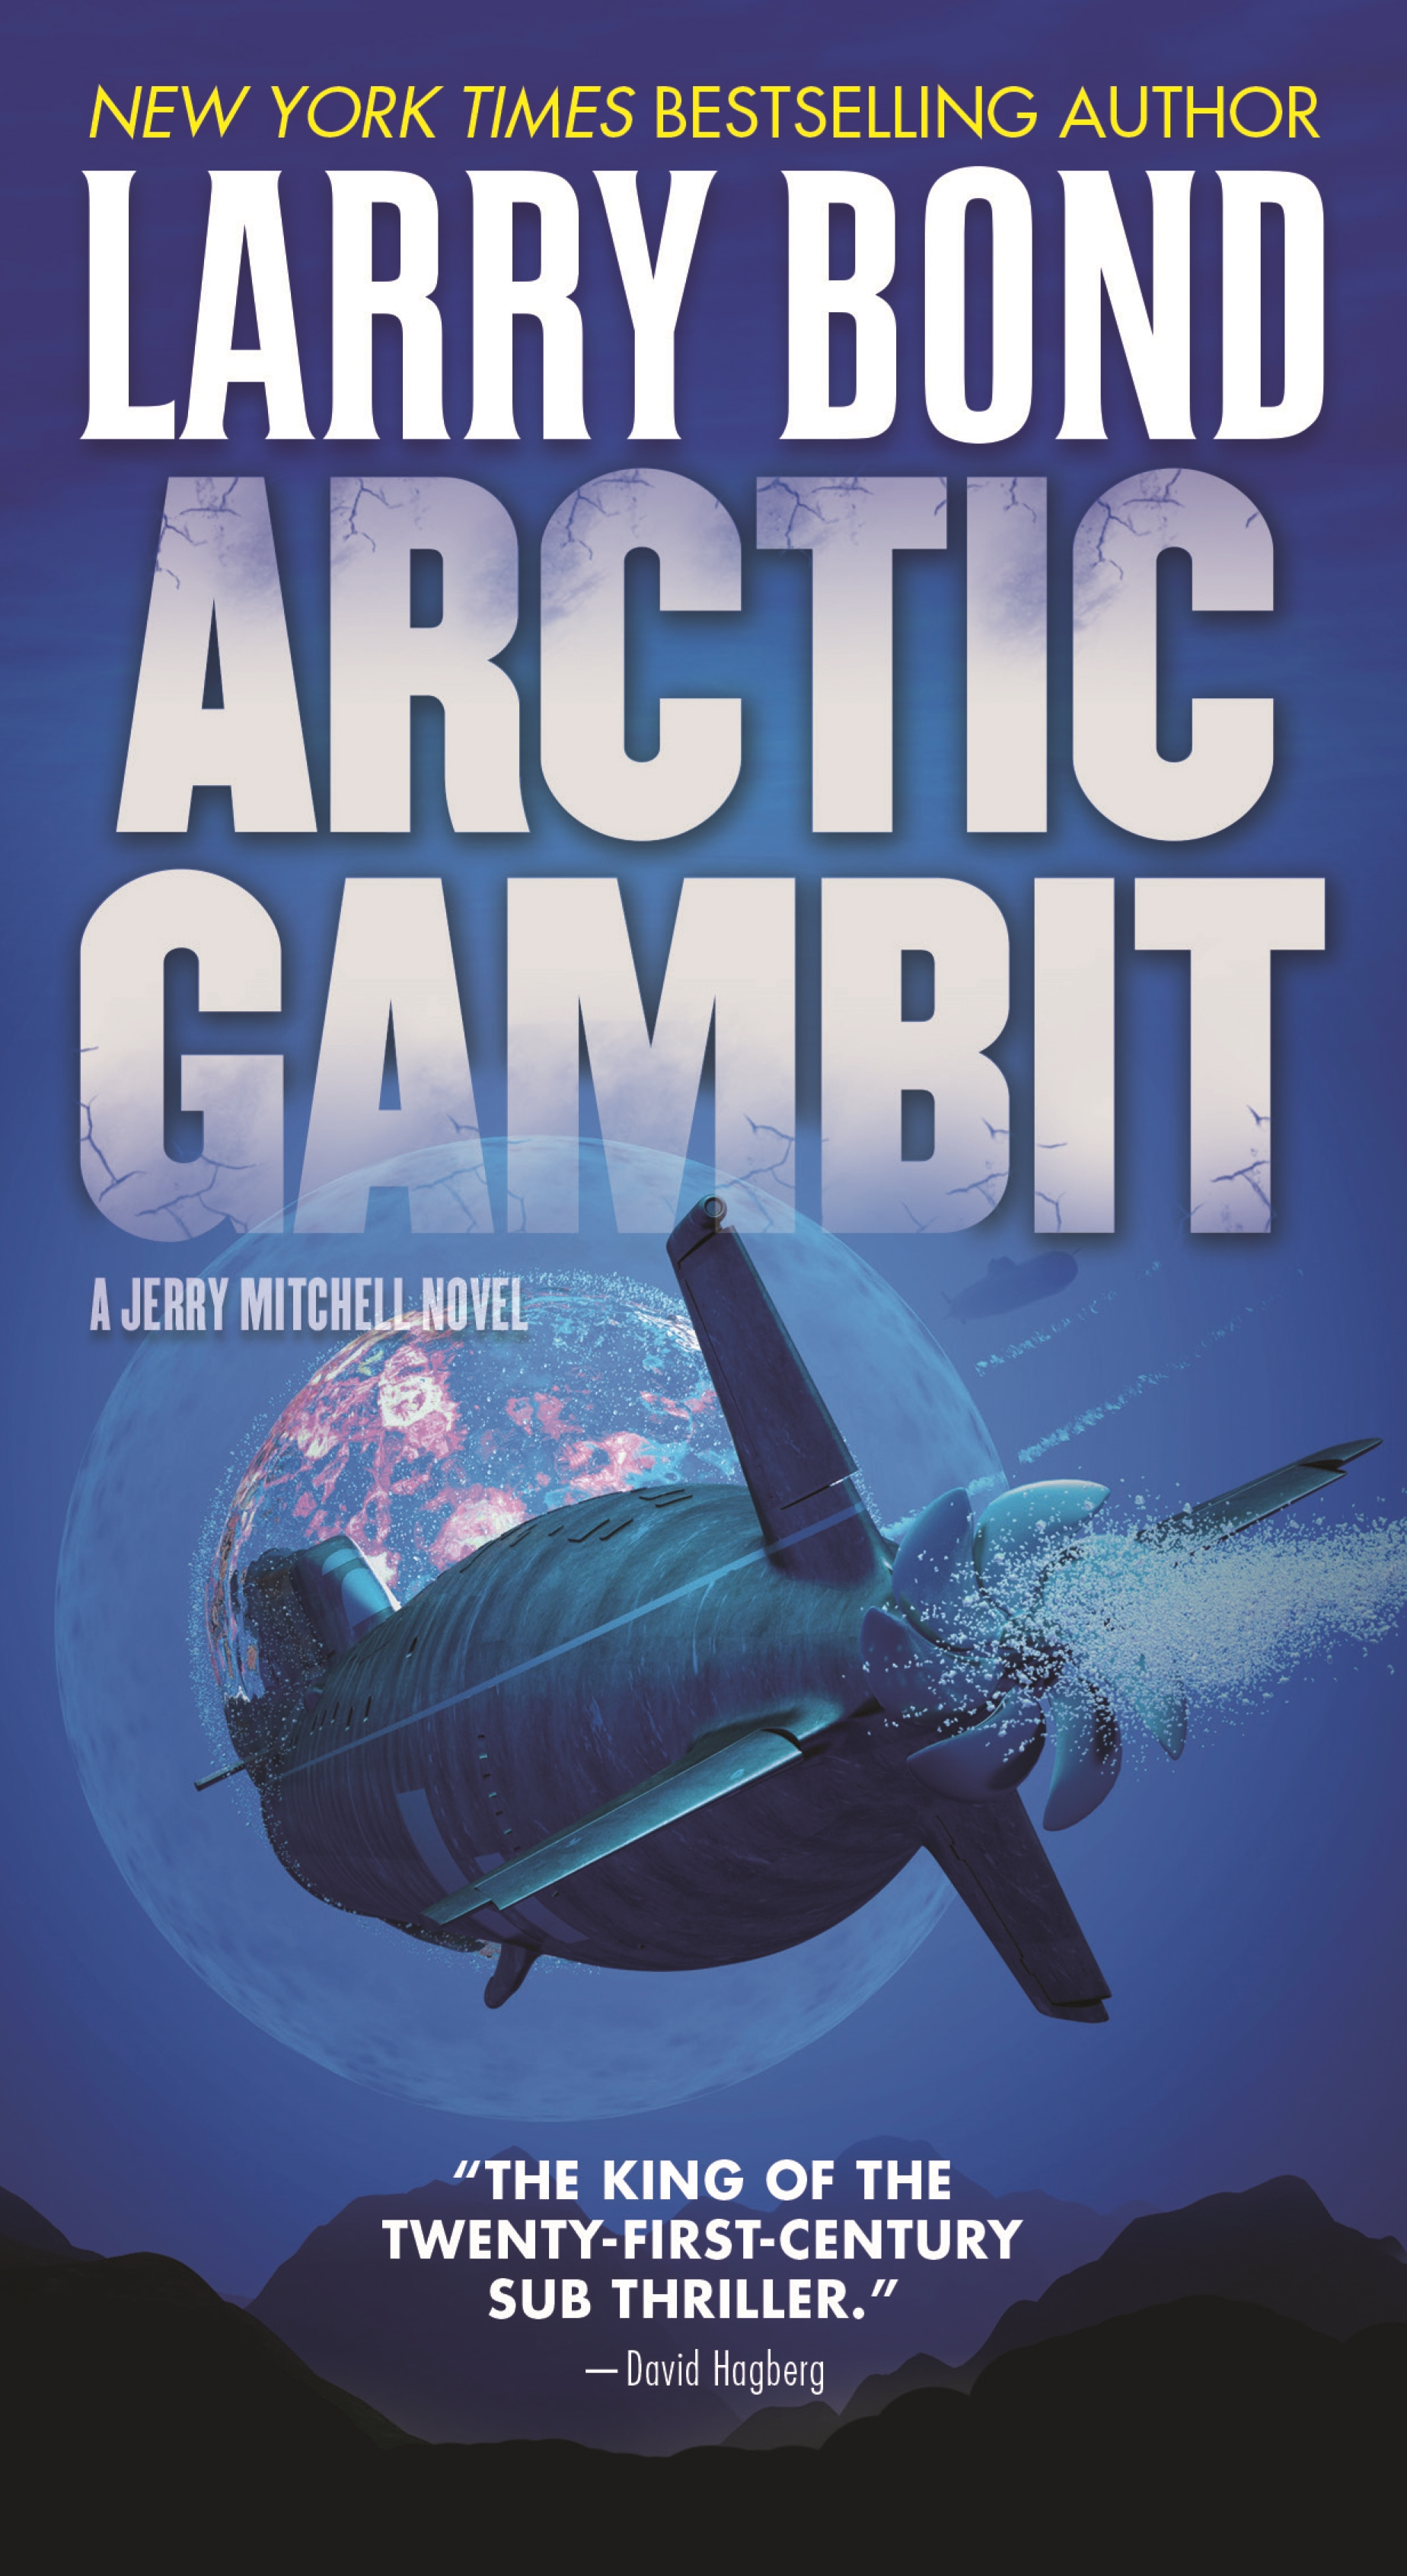 Arctic gambit : A Jerry Mitchell Novel